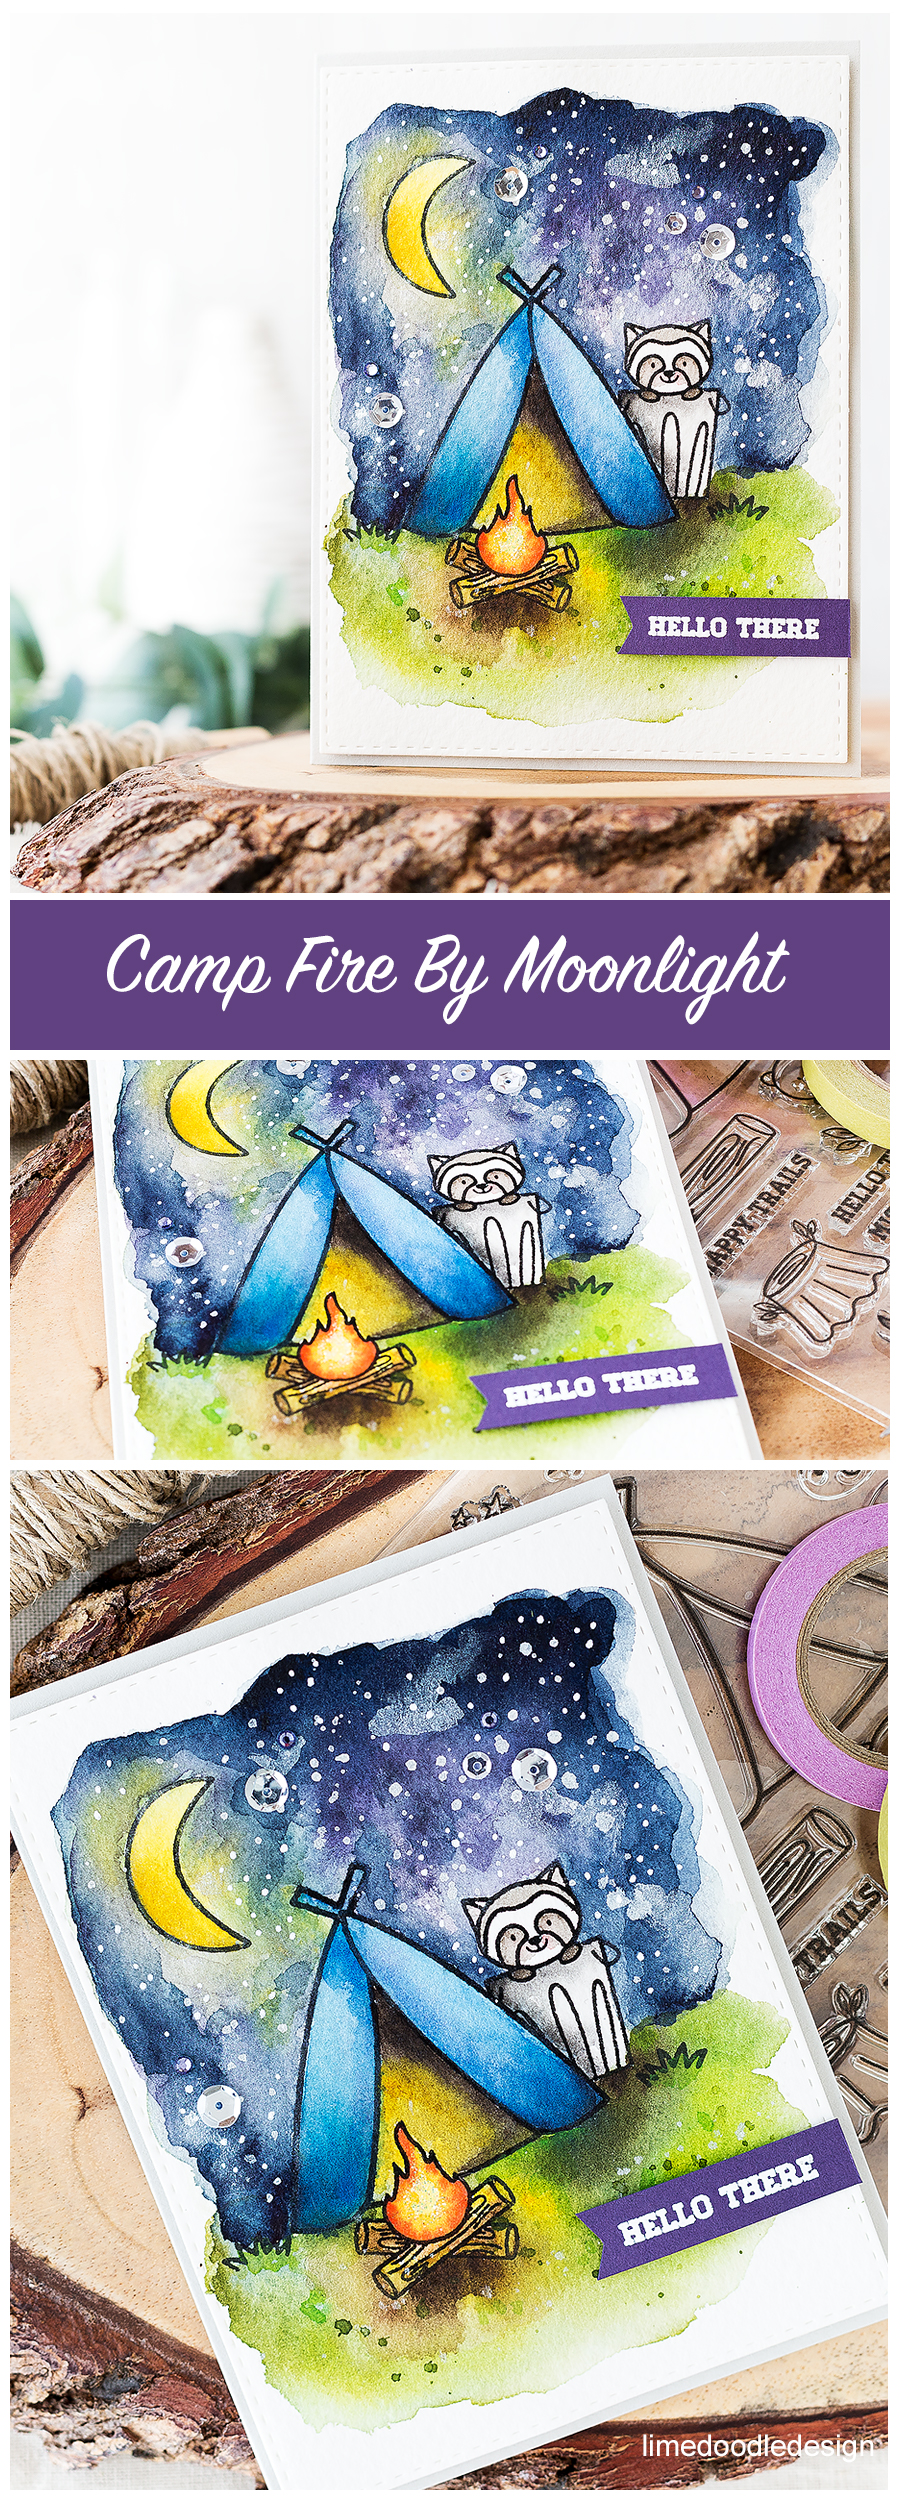 Camping under moonlight with a critter to keep you company! Find out more about this watercolor card by clicking on the following link: https://limedoodledesign.com/2016/08/pretty-pink-posh-august-new-release/